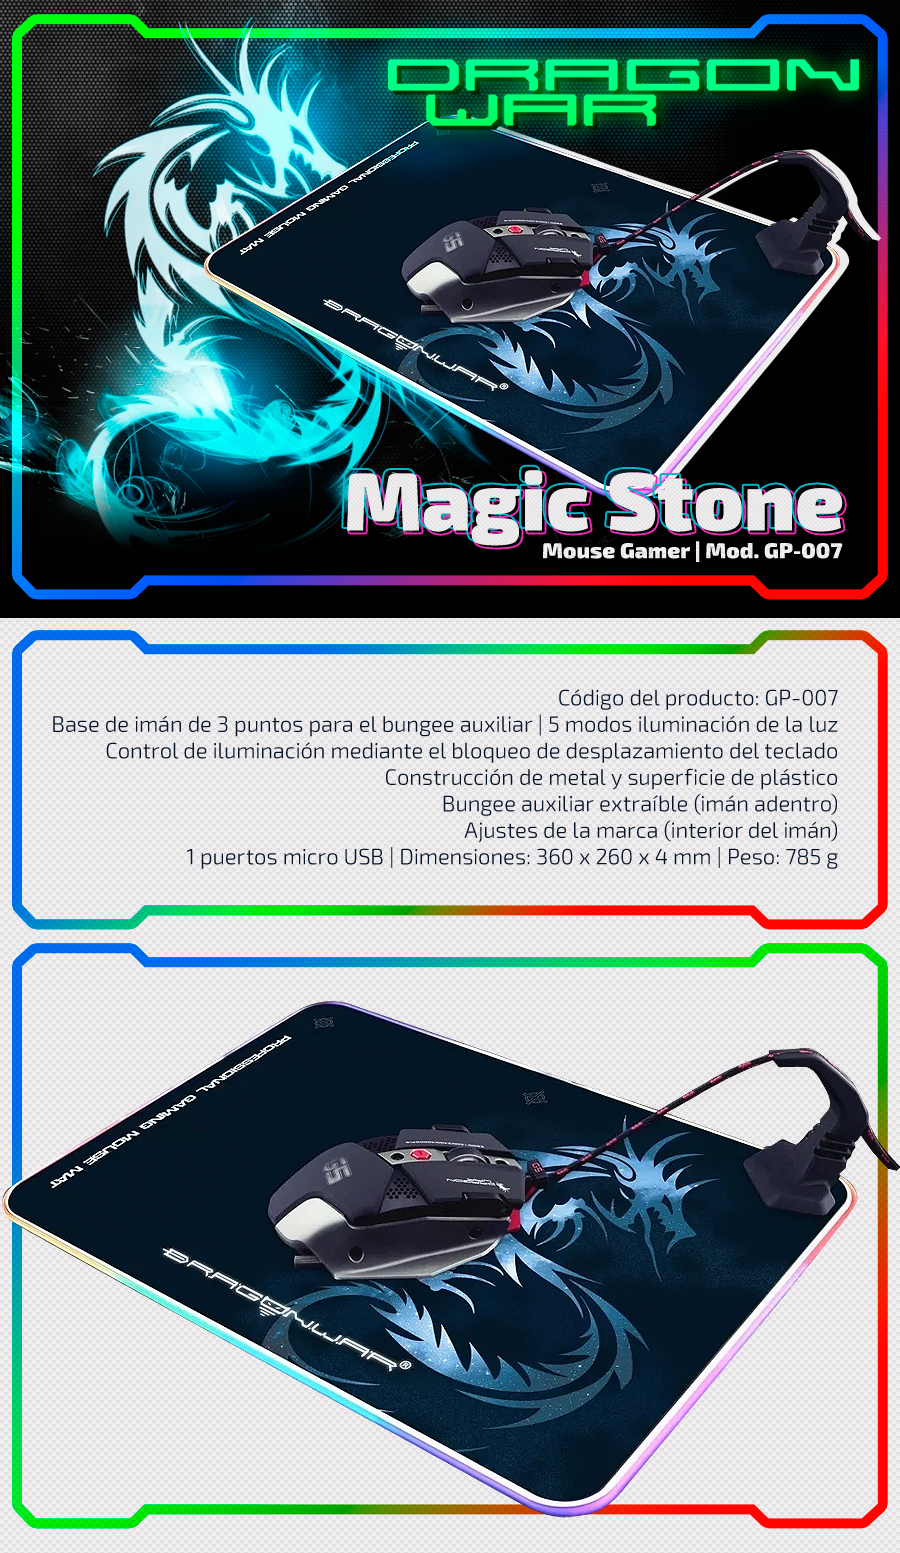 Mouse Pad Retroiluminado Dragon War RGB GP-007